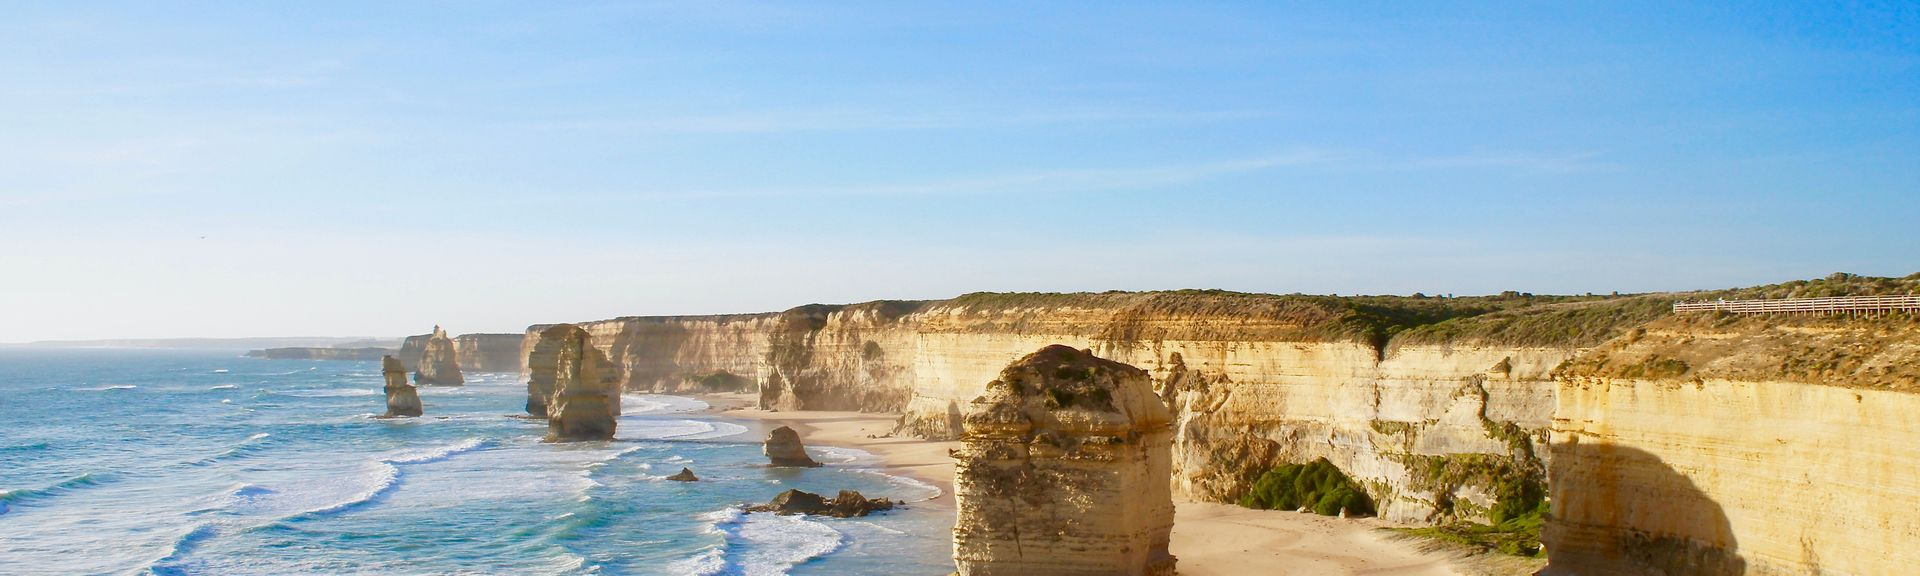 Great Ocean Road, VIC, Australia